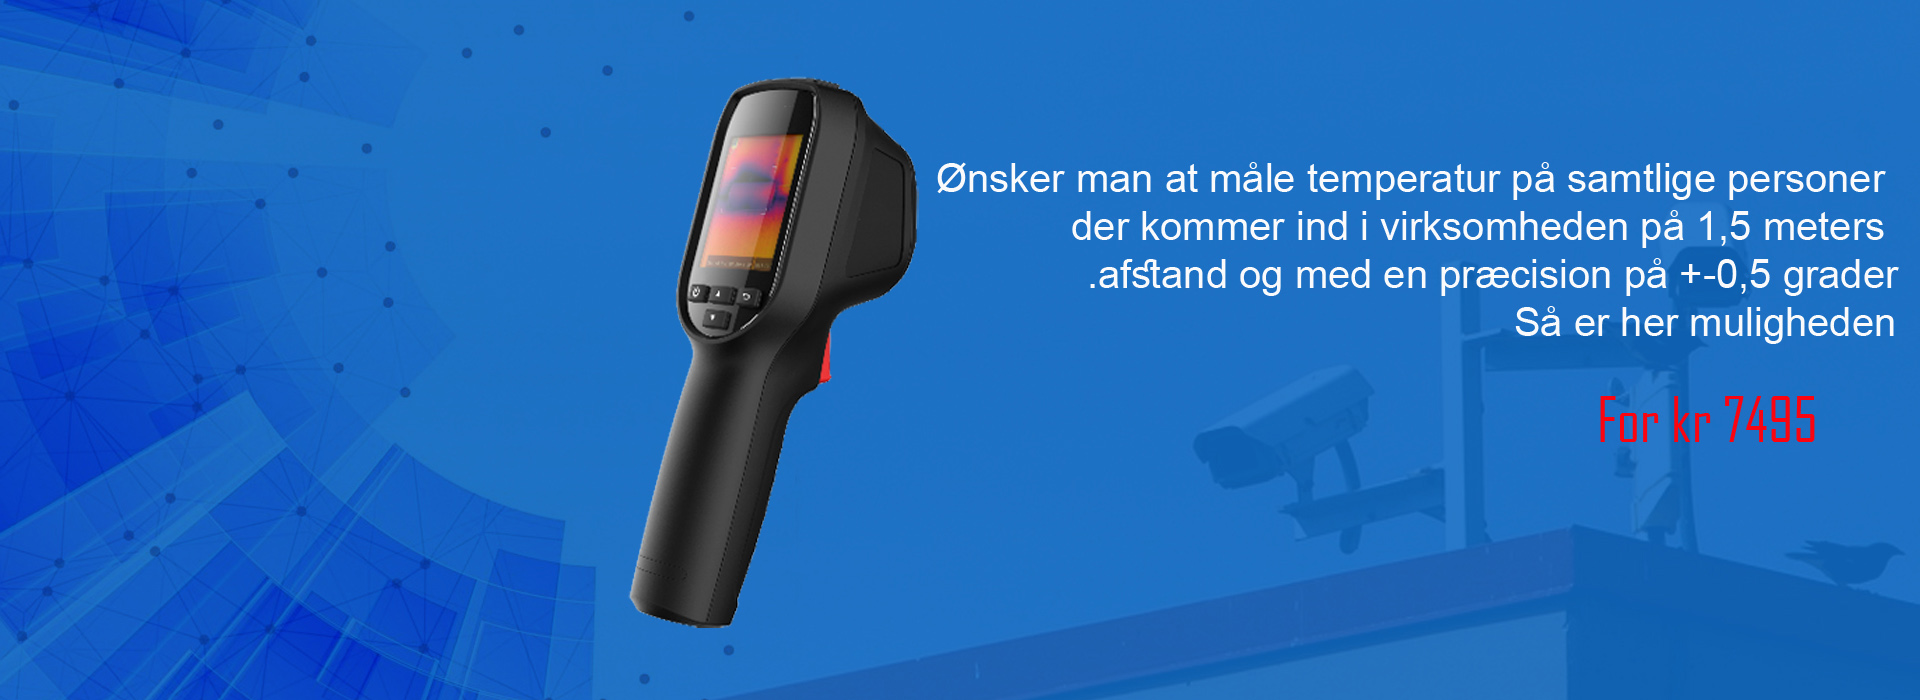 Portable Thermal Imager - Corona camera